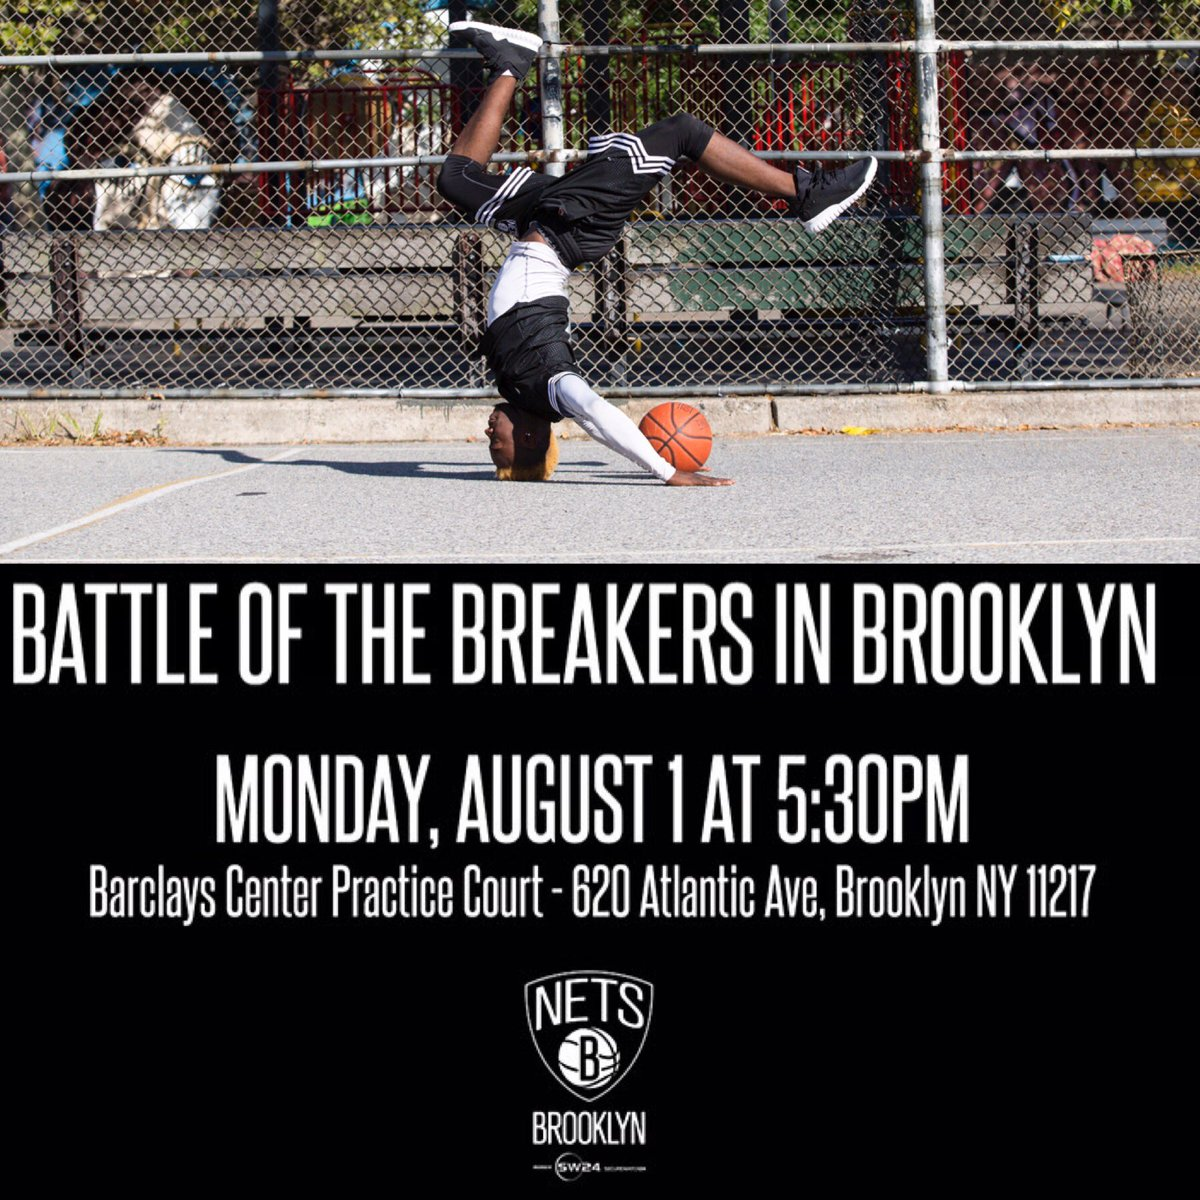 Calling all B-Boys and B-Girls, Come show us your skills 8/1 @ 5:30PM Sign up now at https://t.co/DbJKfj35Sx. https://t.co/CmSgrYj6PB